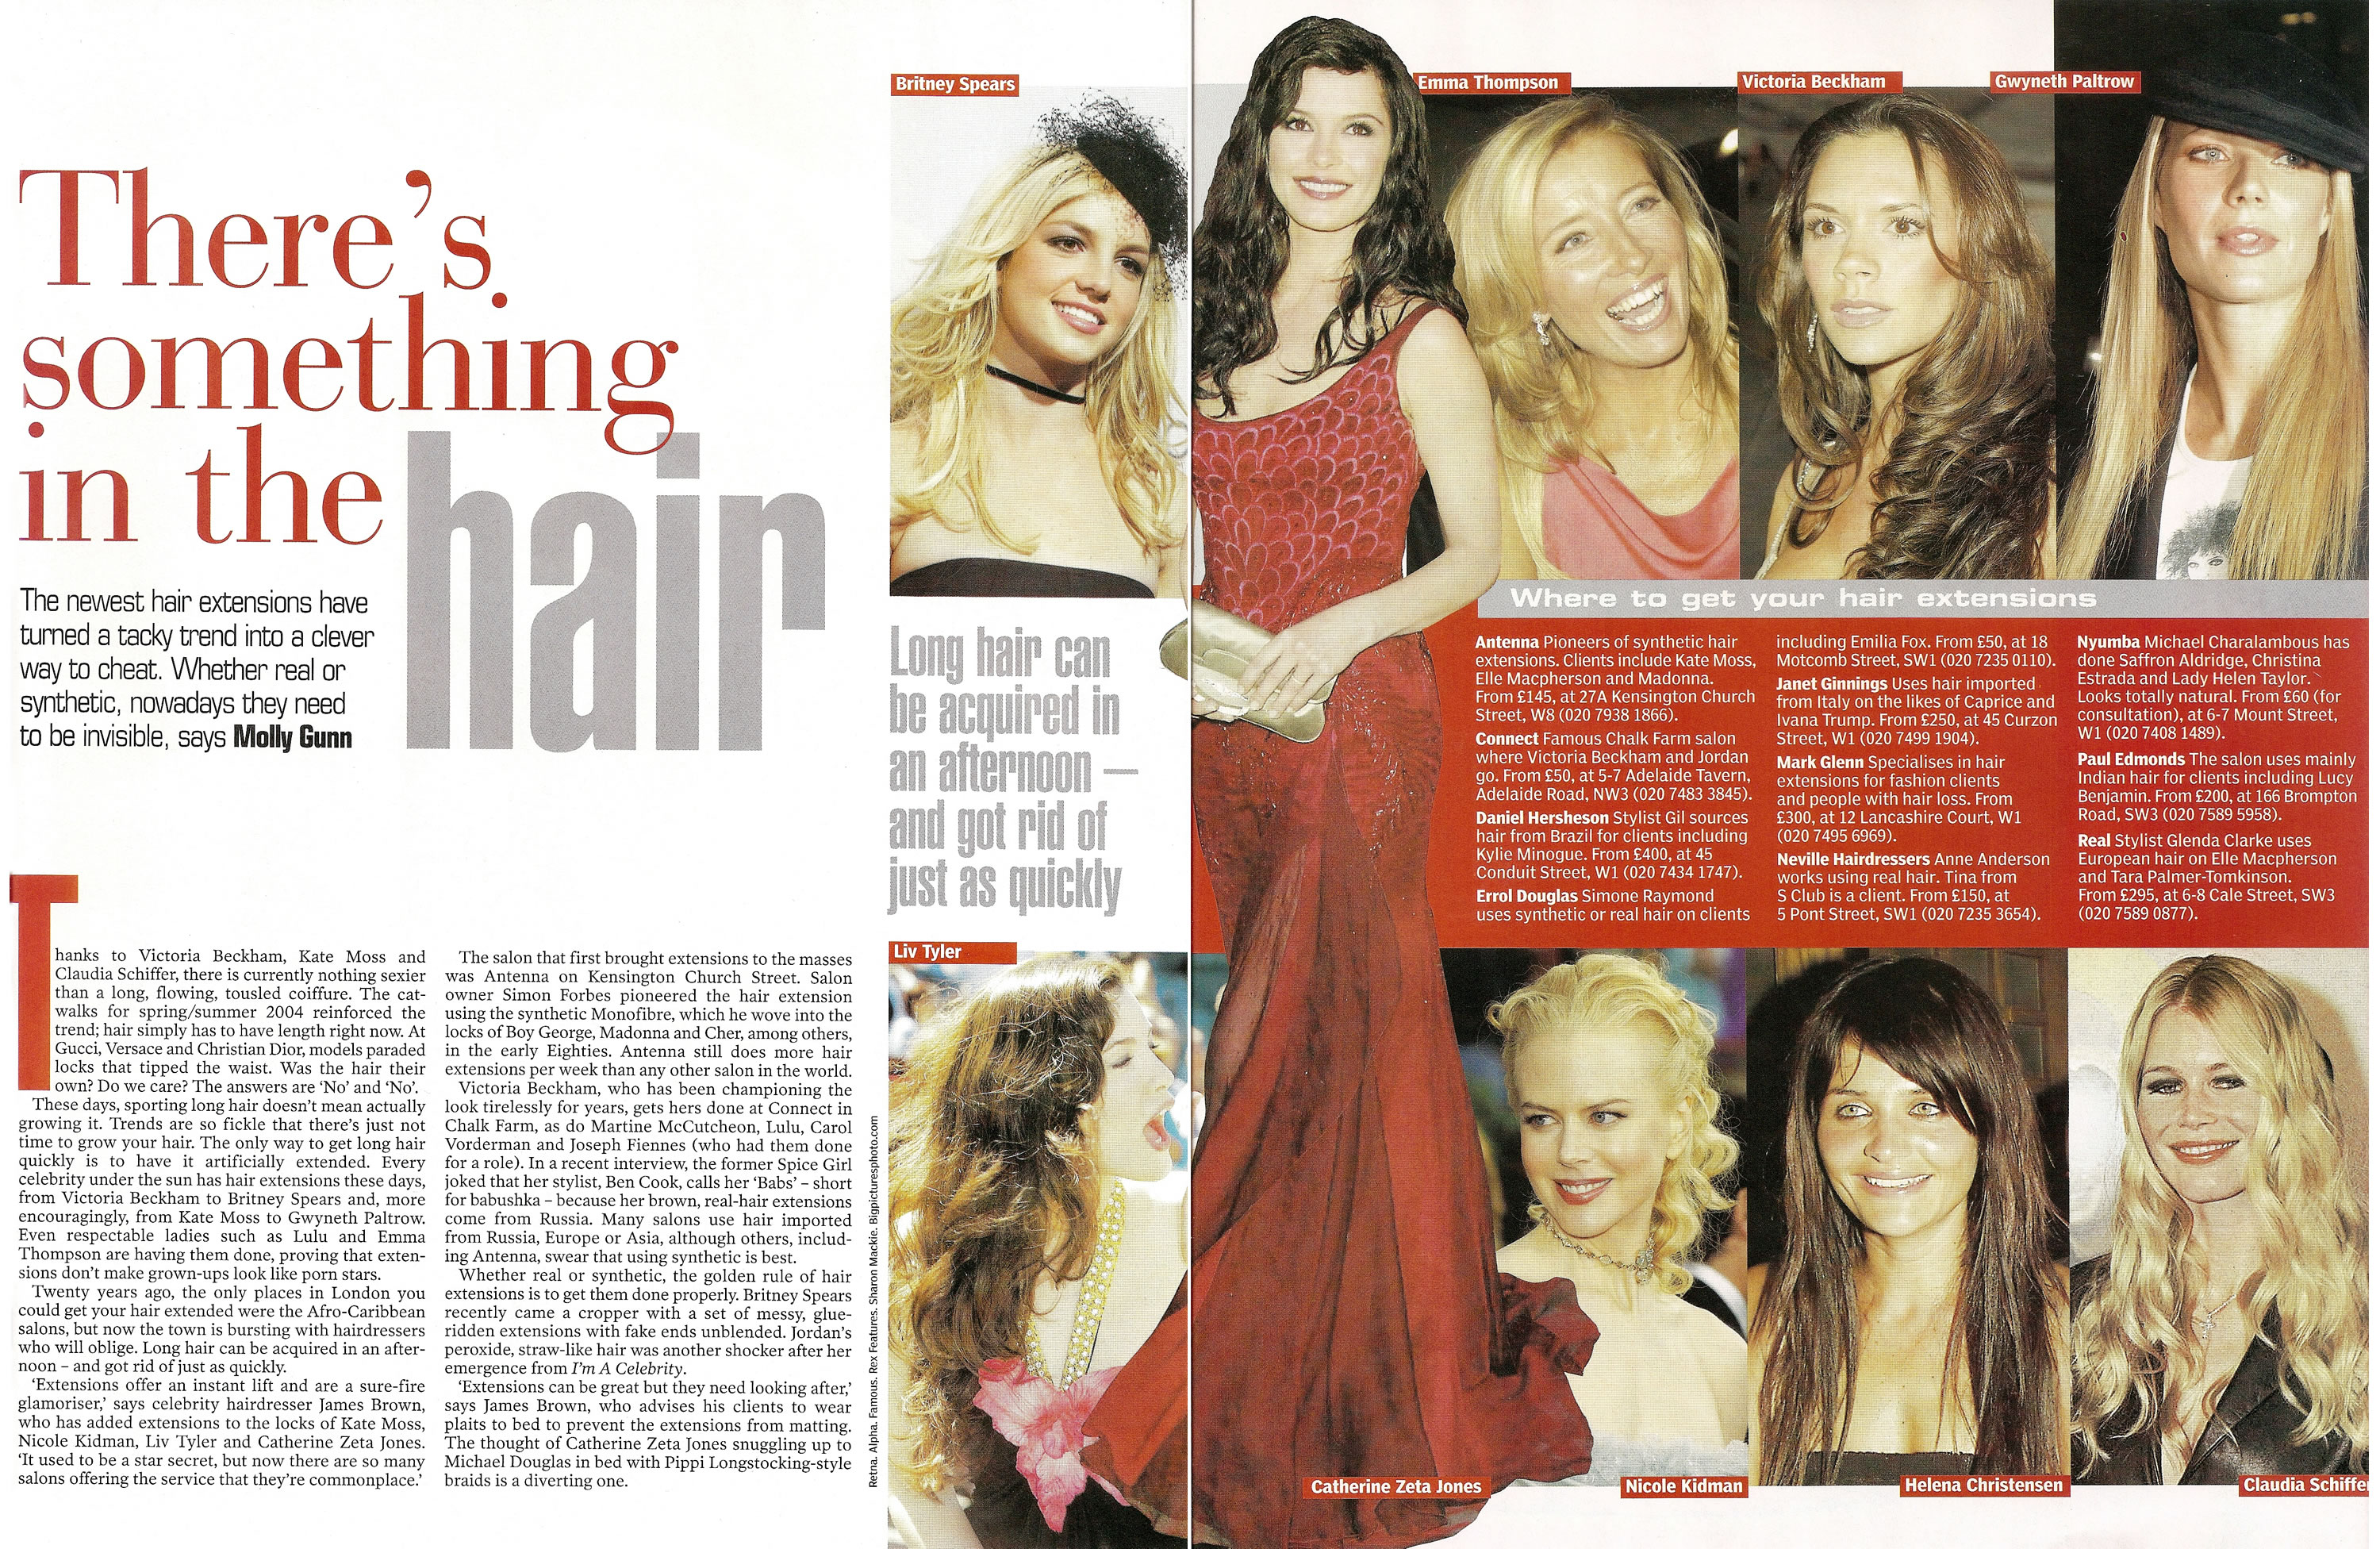 Evening Standard - There's Something in the Hair - Hair Extensions